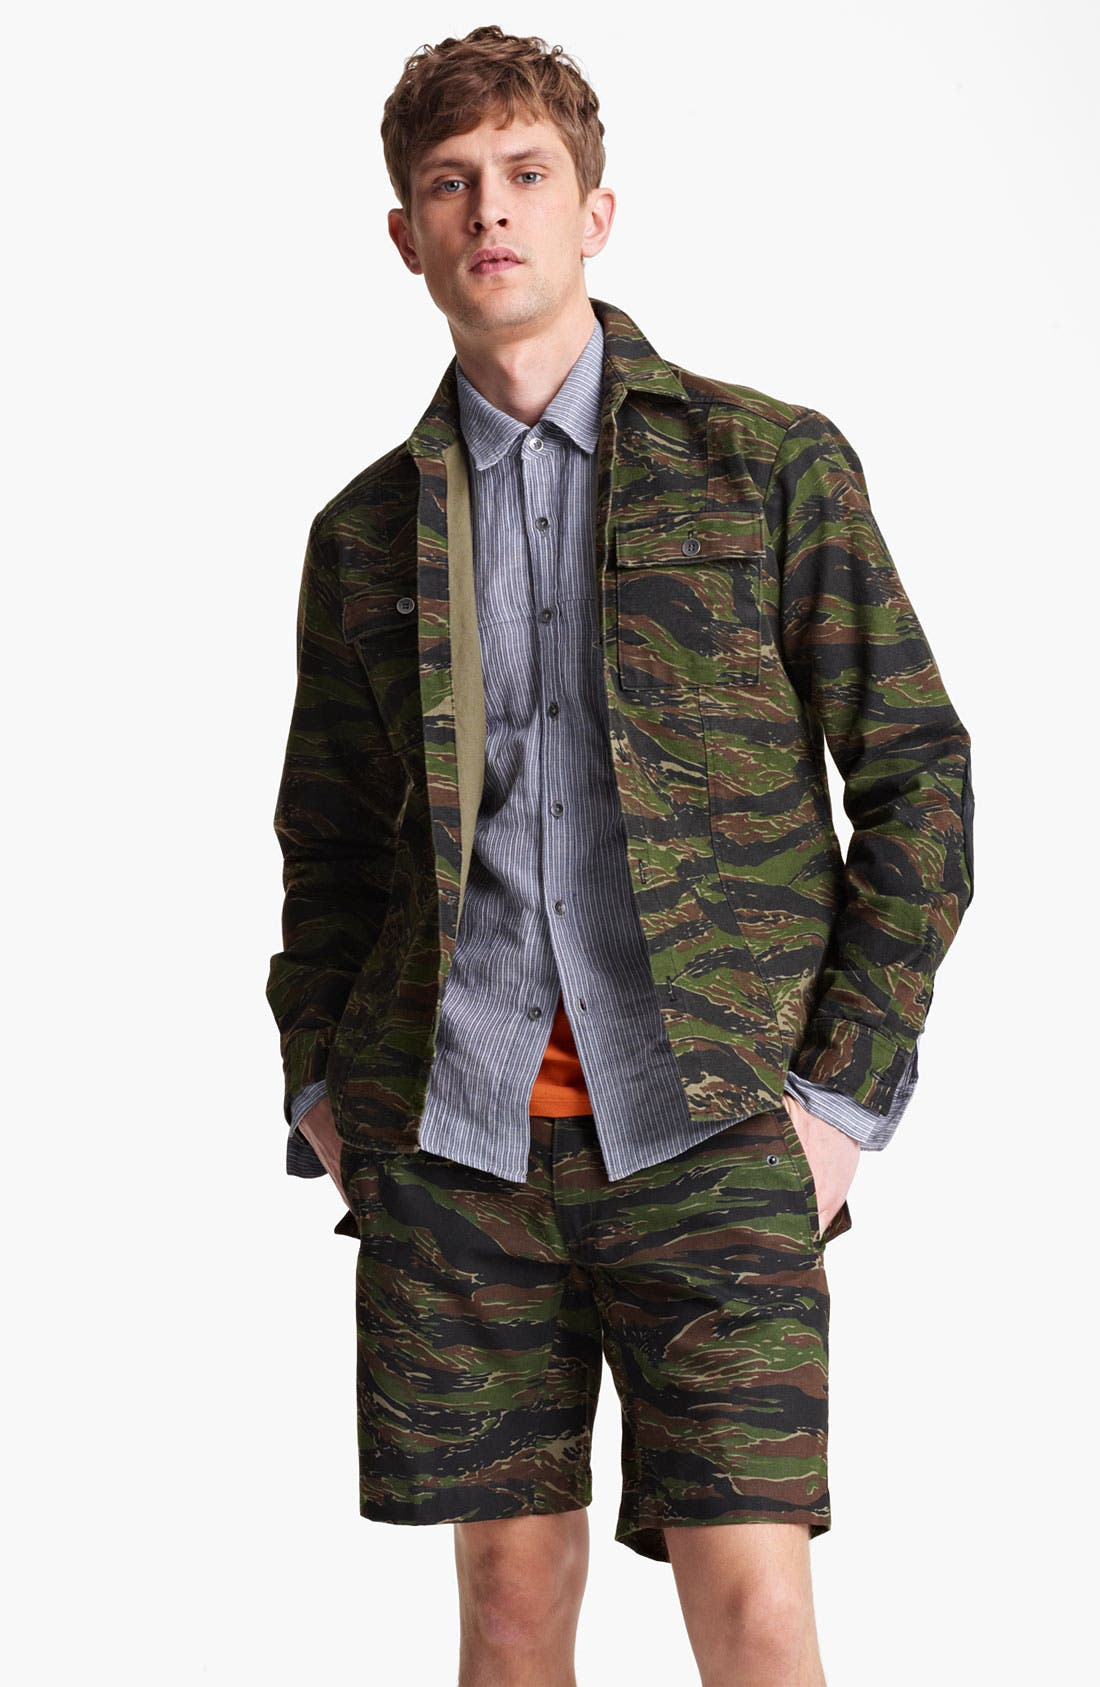 Alternate Image 1 Selected - Field Scout 'Recon' Camo Shirt